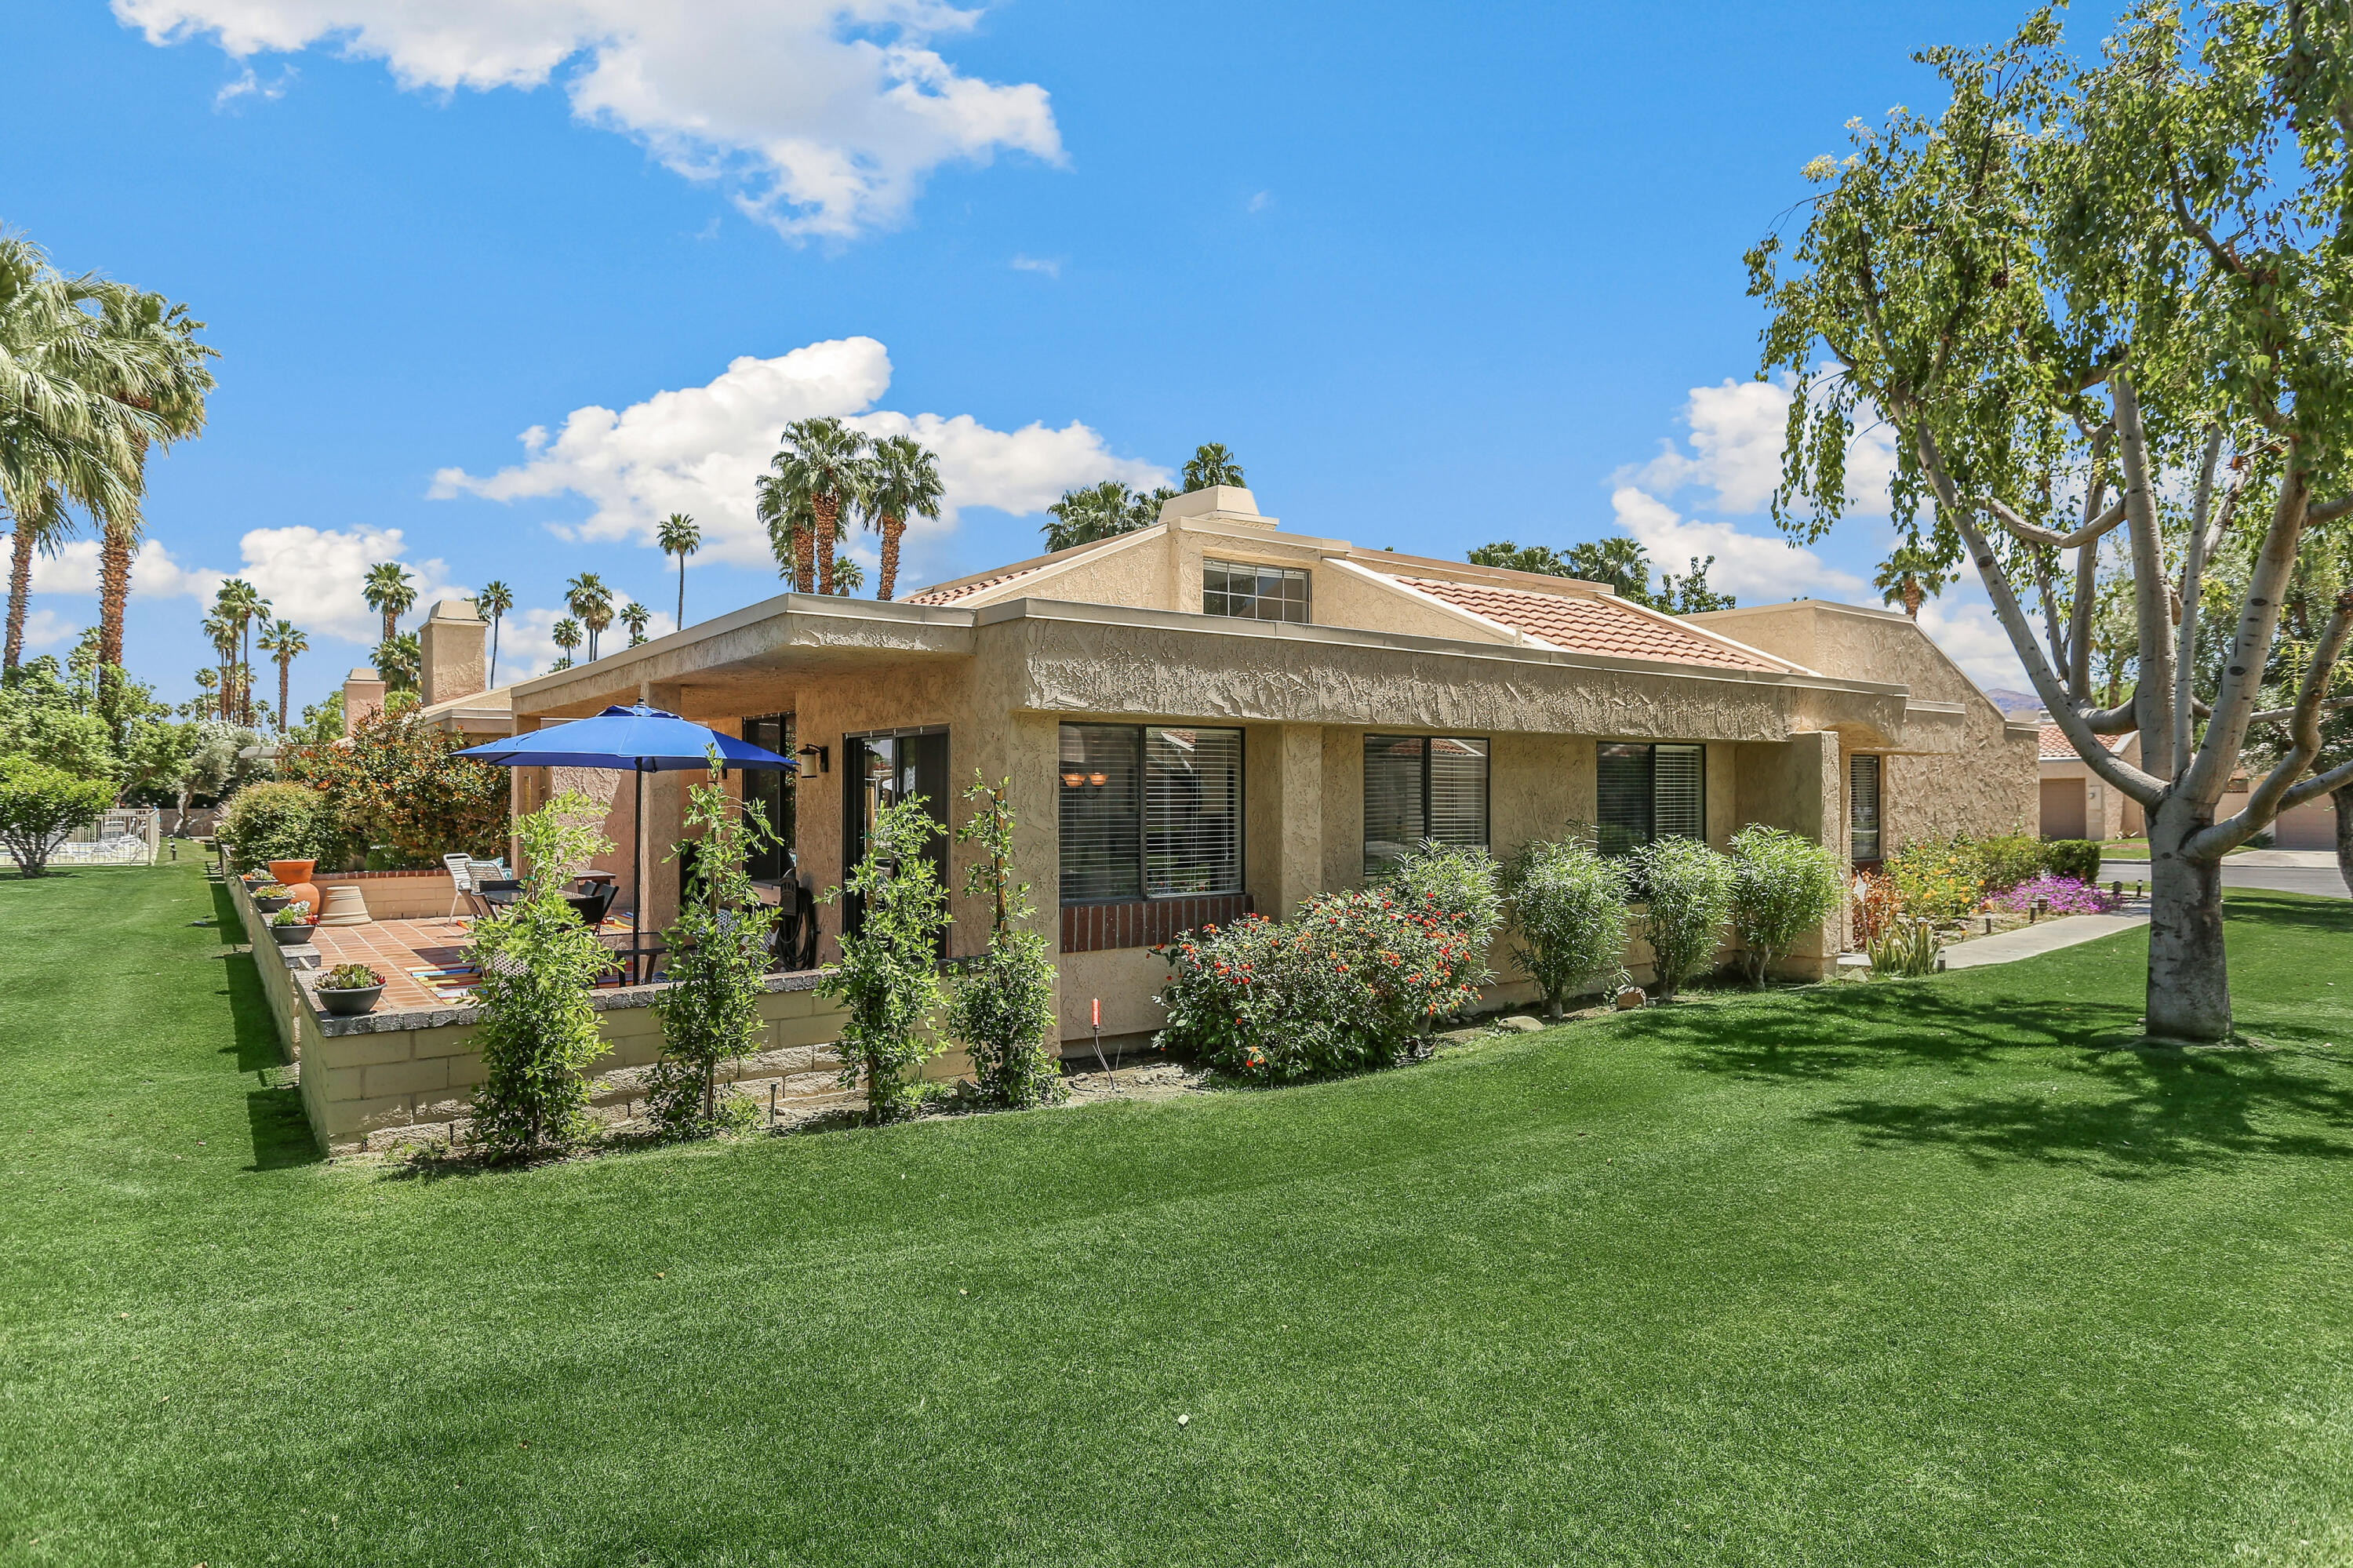 A wonderful offering at Cathedral Canyon Country Club located near all conveniences and minutes away from the Palm Springs international airport! This end unit condo is sitting on an interior location and steps away from a sparkling pool & spa & beautiful manicured greenbelts. The spacious and open floor plan features over 1700 sqft of living space with 3 bedrooms (one being currently used as den) & 2 baths. This bright condo offers high ceilings, an interior atrium, a cozy fireplace, custom window treatments, updated laminate flooring in most rooms & a brand new water heater. Cook a delicious meal in the remodeled kitchen with new cabinetry, quartz slab countertops and newer stainless steel appliances. Outdoors, relax in one of two oversized enclosed patios not to forget a laundry room & a large two car attached garage with storage. For an even easier move, this condo comes mostly turnkey furnished (per inventory). Cathedral Canyon Country club amenities include a golf course, multiple heated  pools, spas, tennis, a clubhouse and the popular Jax restaurant...this is one not to be missed!